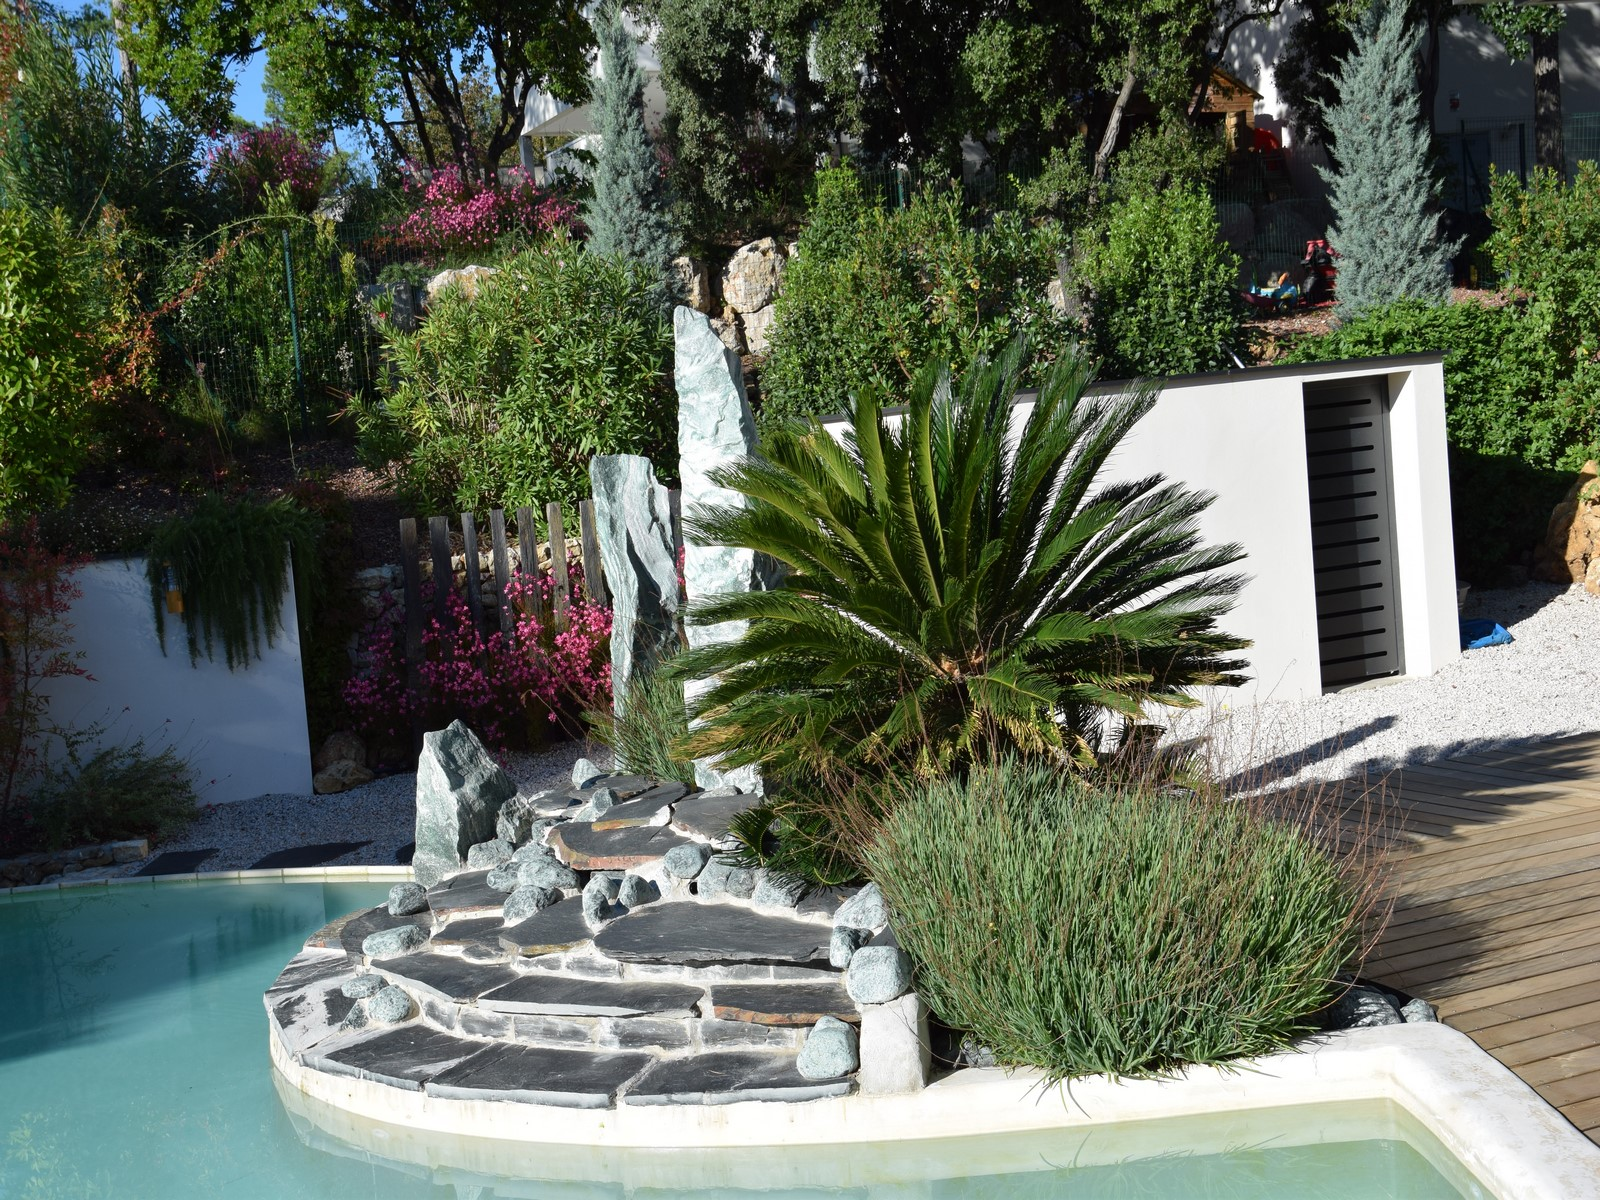 Am nagement jardin montpellier herault for Amenagement deco jardin